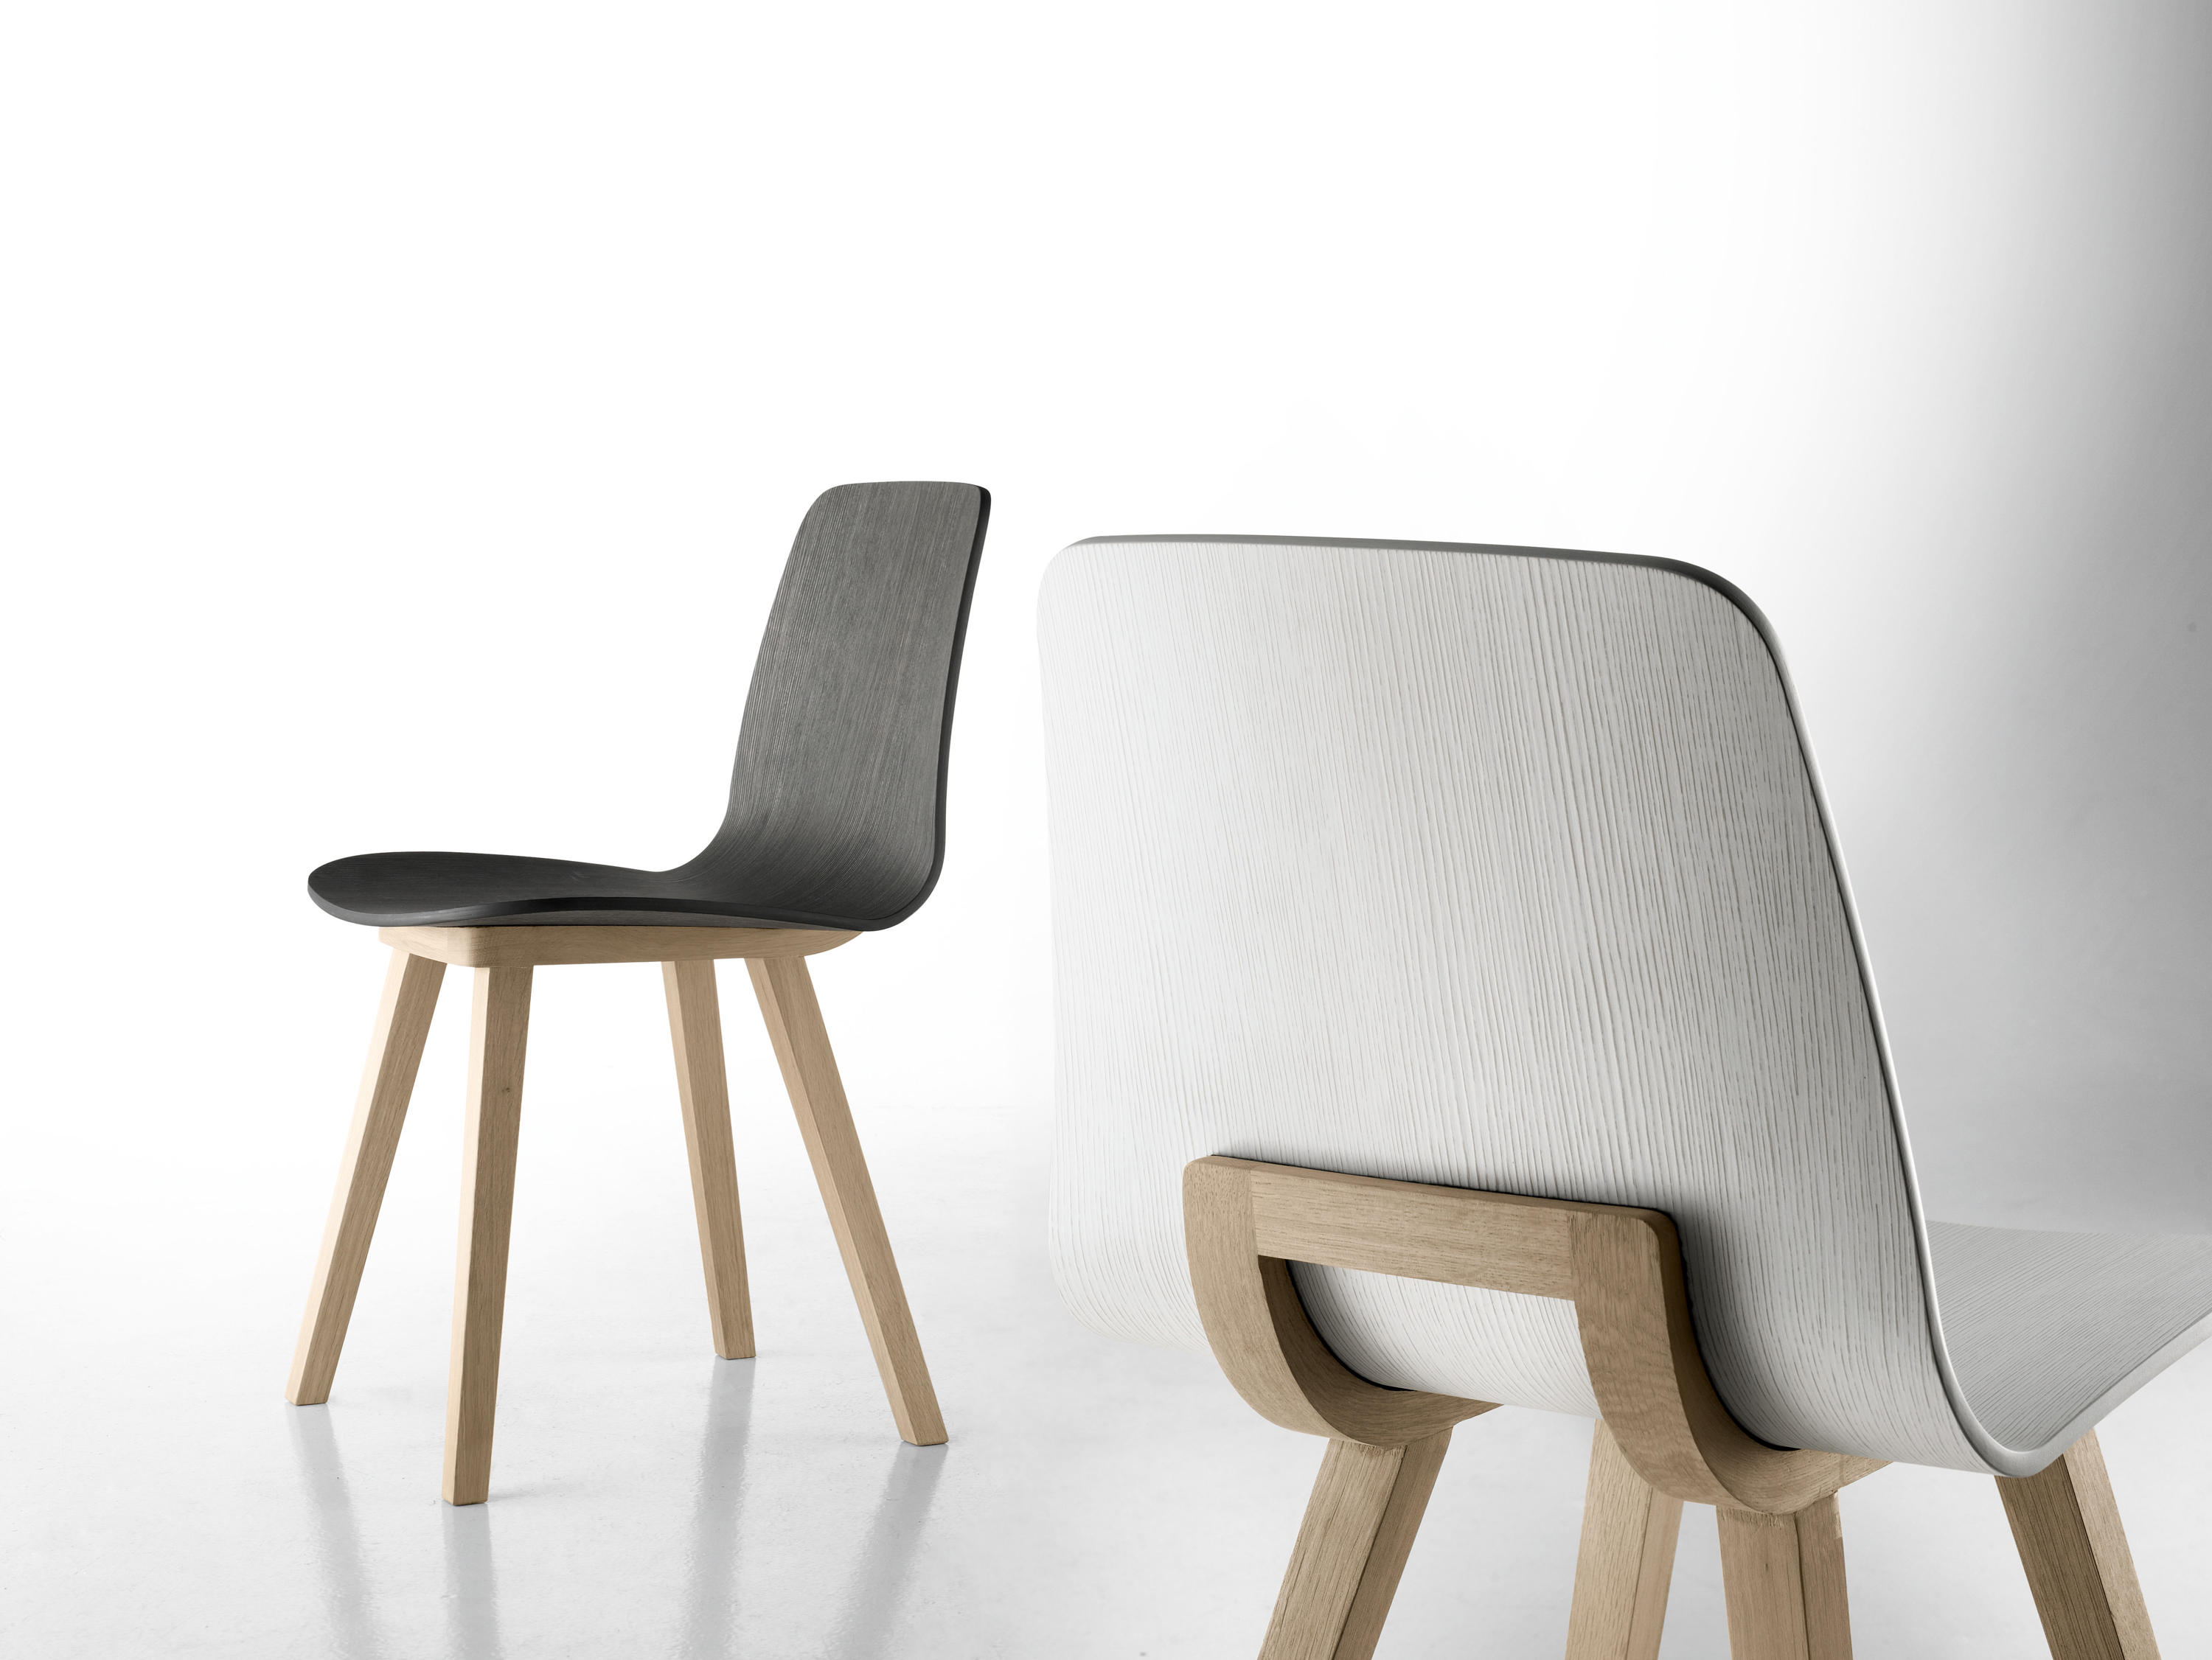 kuskoa chair restaurant chairs from alki architonic